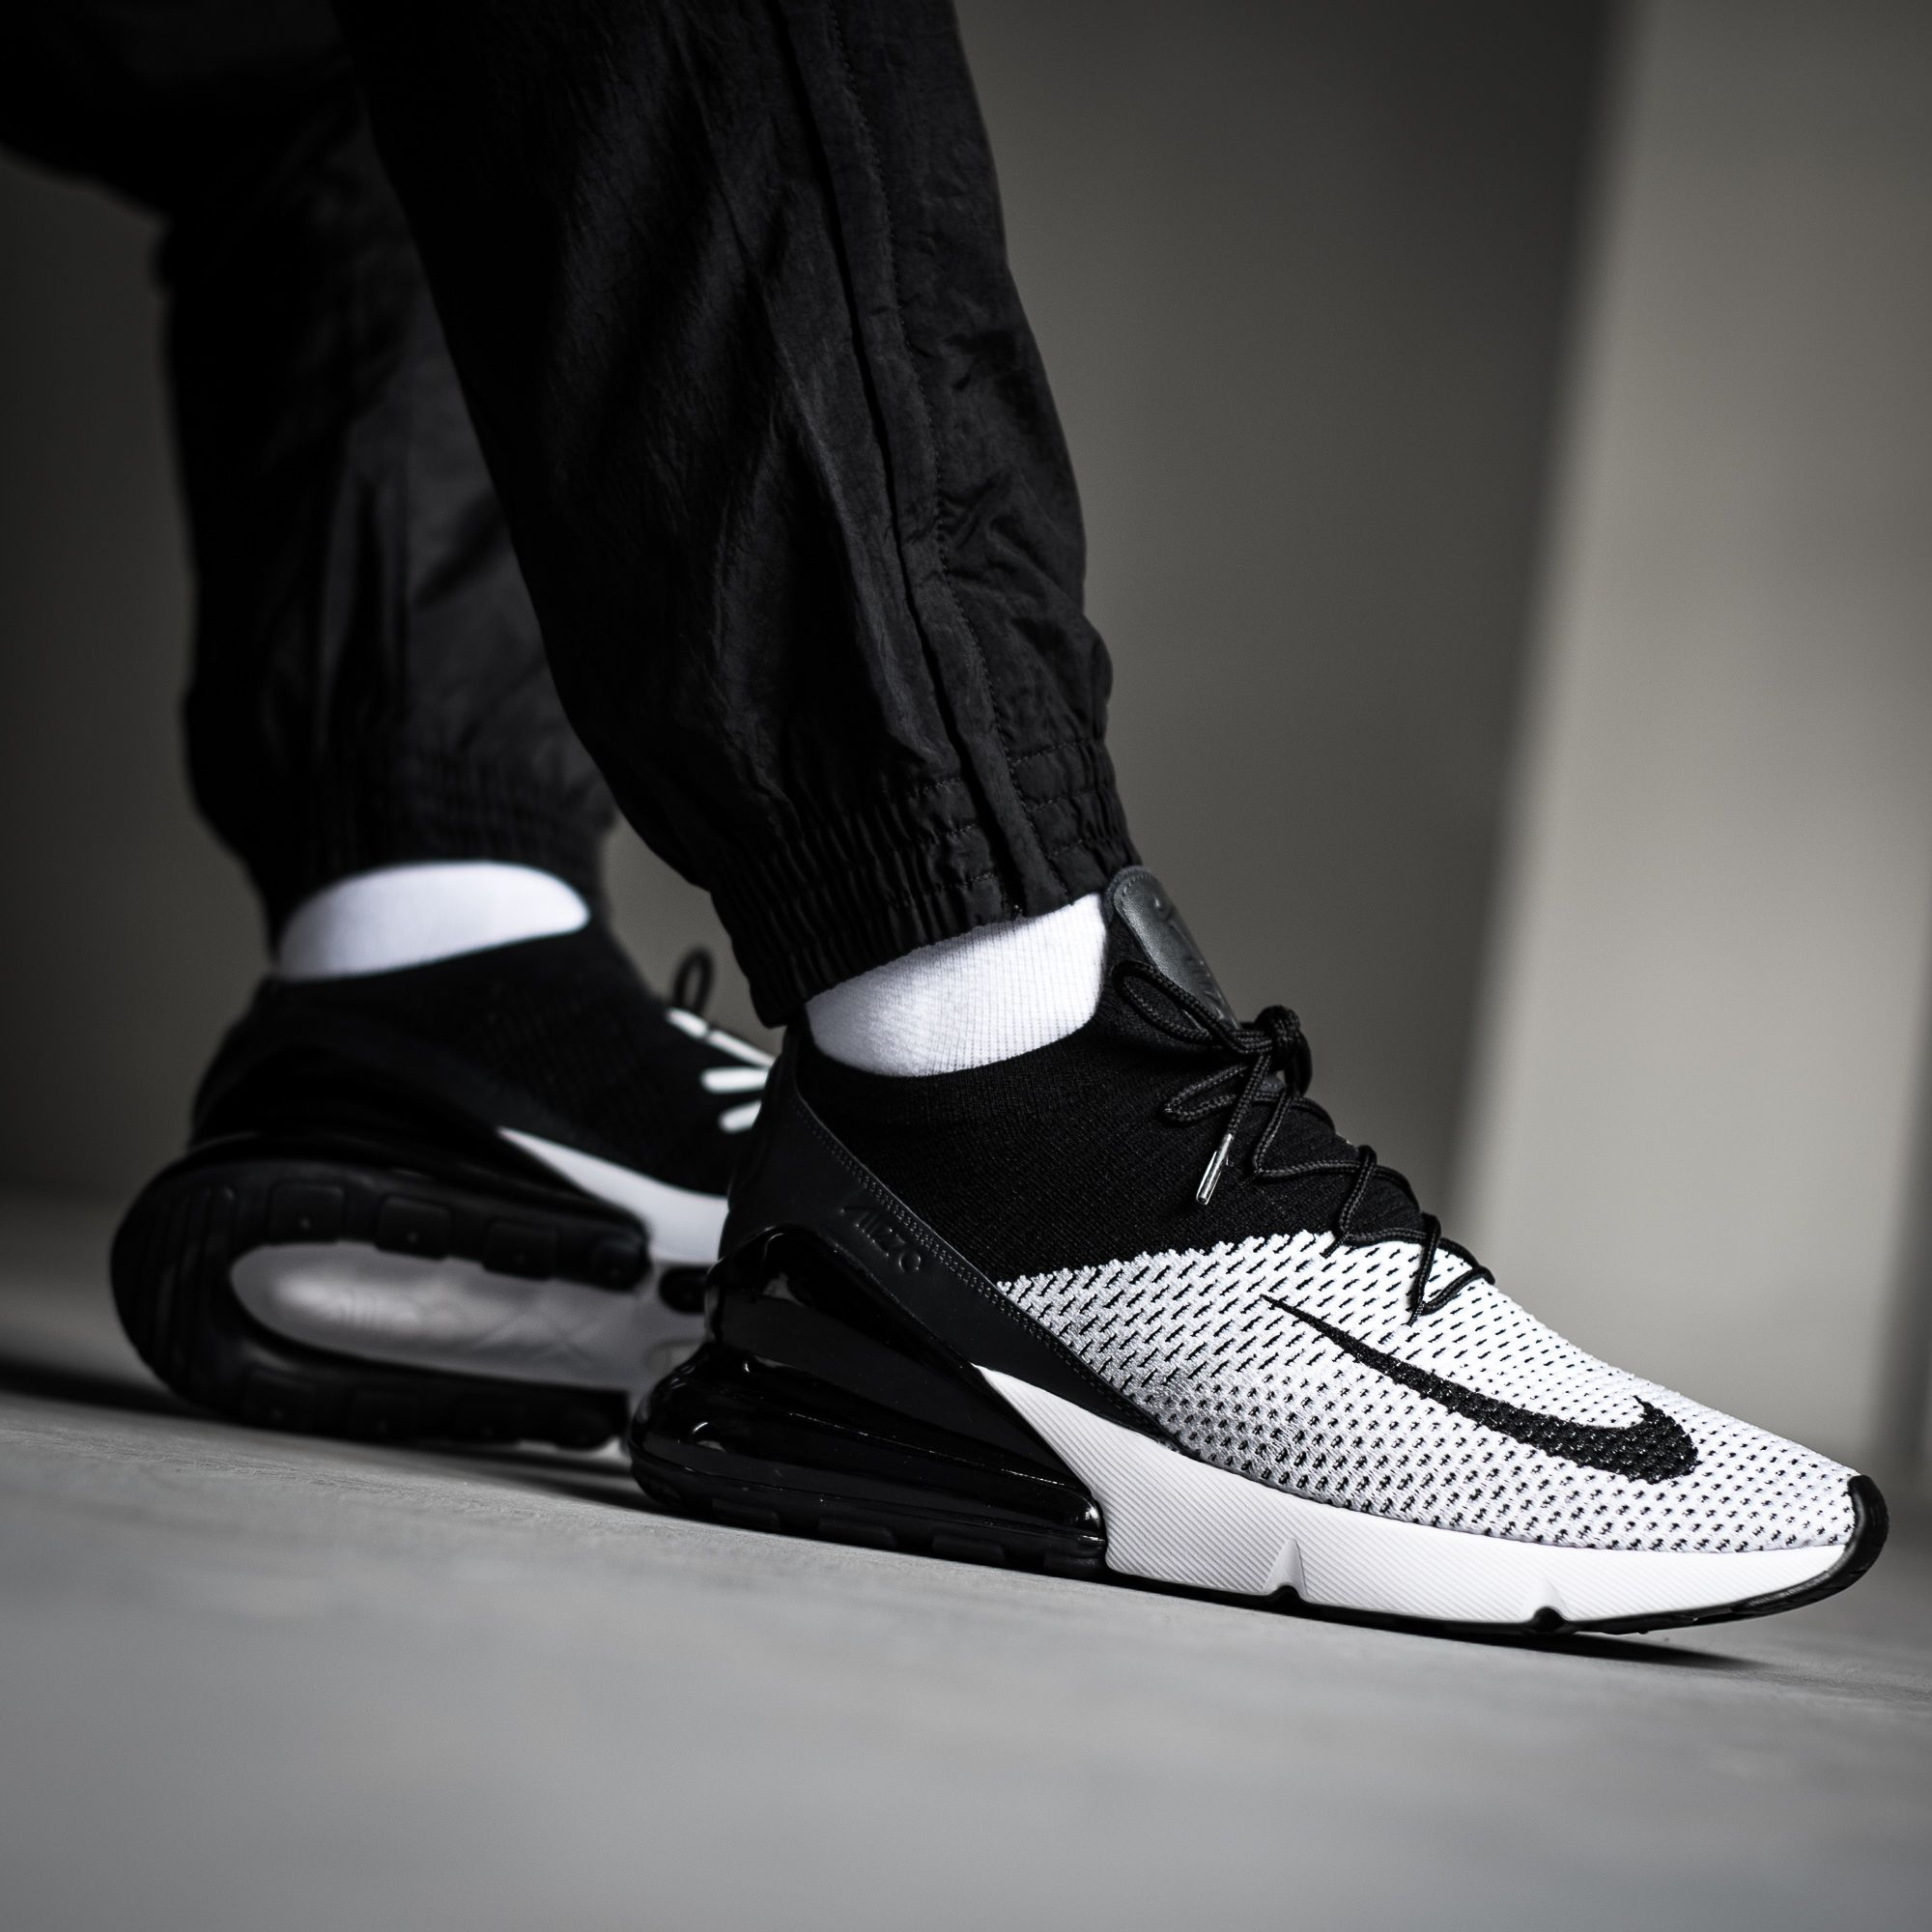 buy popular ff419 2c345 The brand-new NIKE AIR MAX 270 FLYKNIT in a white black-anthracite  colorway! Get yours on kickz.com!